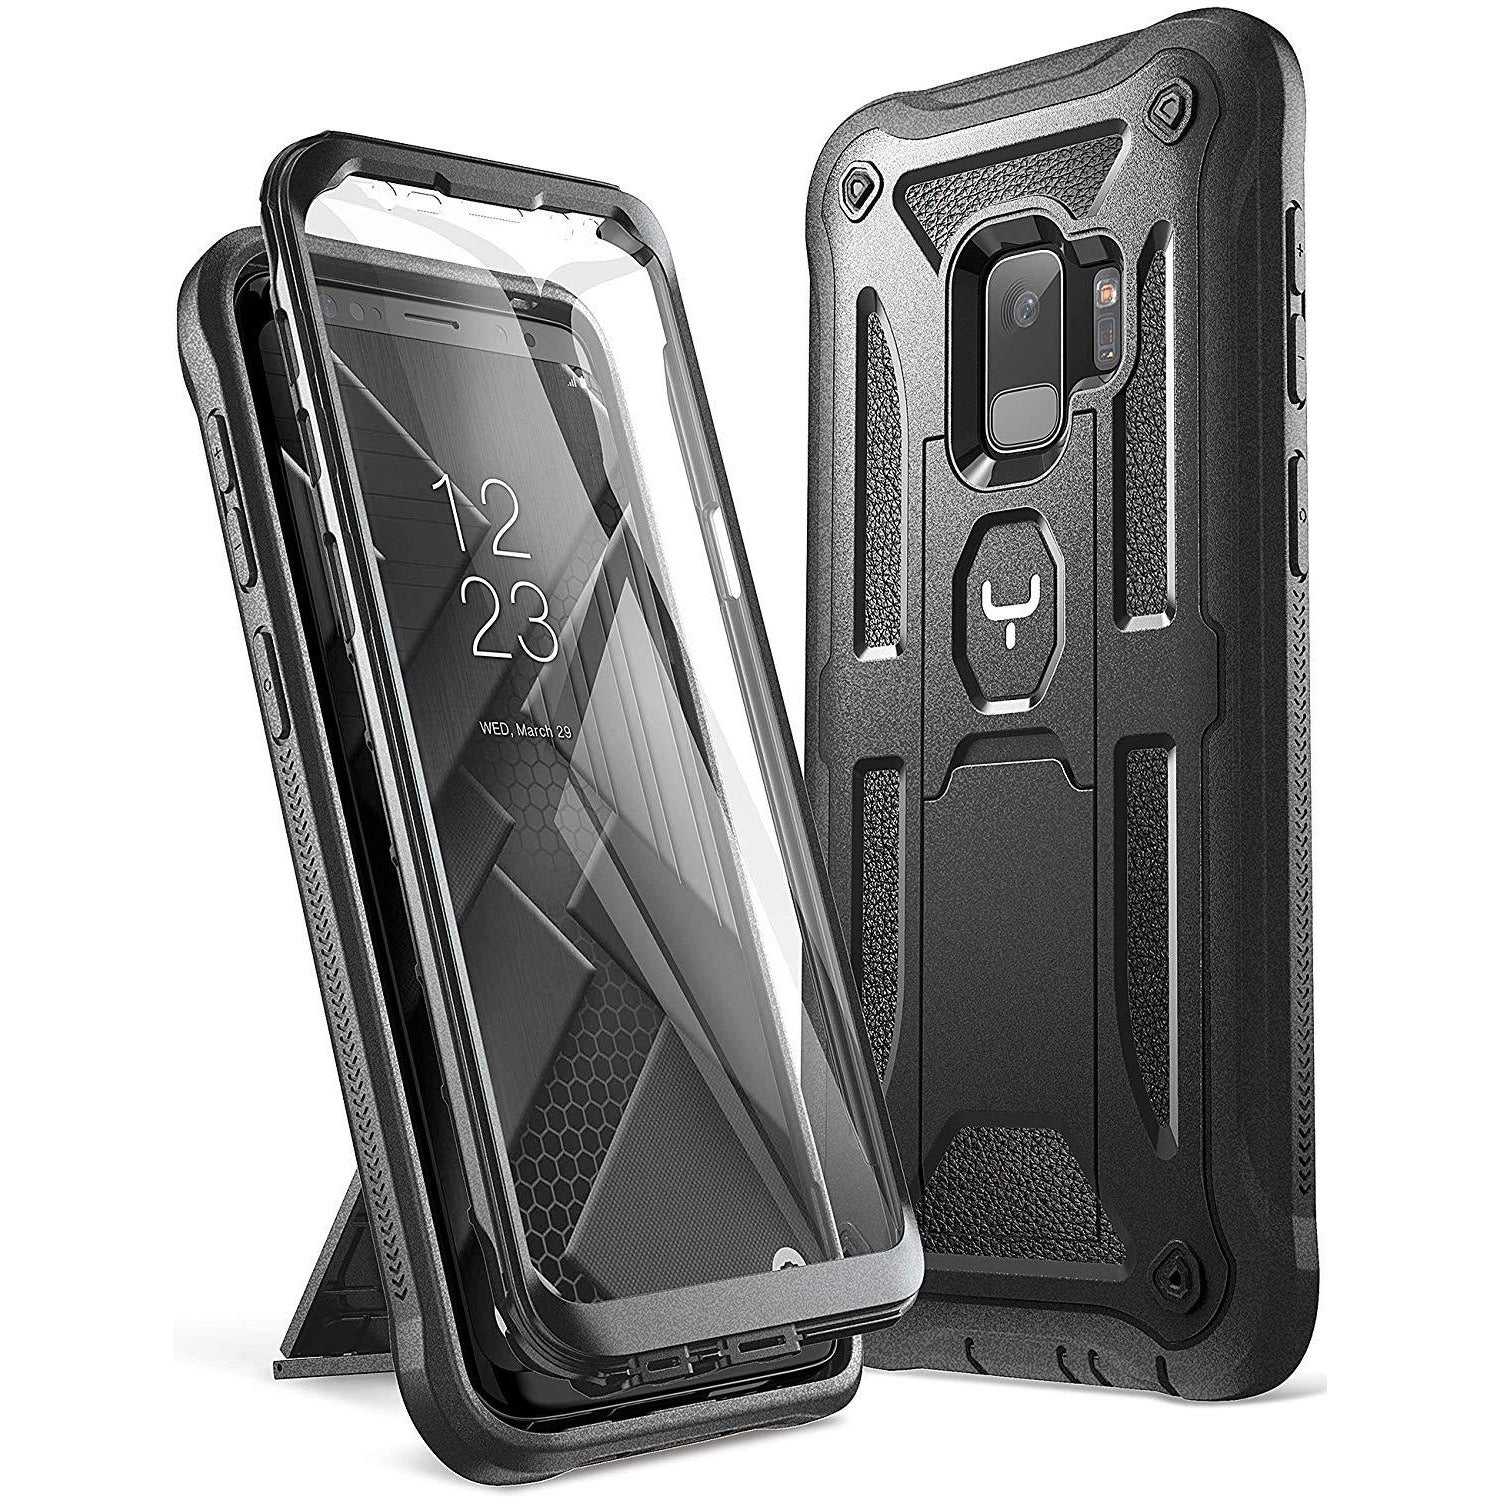 Youmaker Galaxy S9 Case, Heavy Duty Kickstand with Built-in Screen Protector Cover